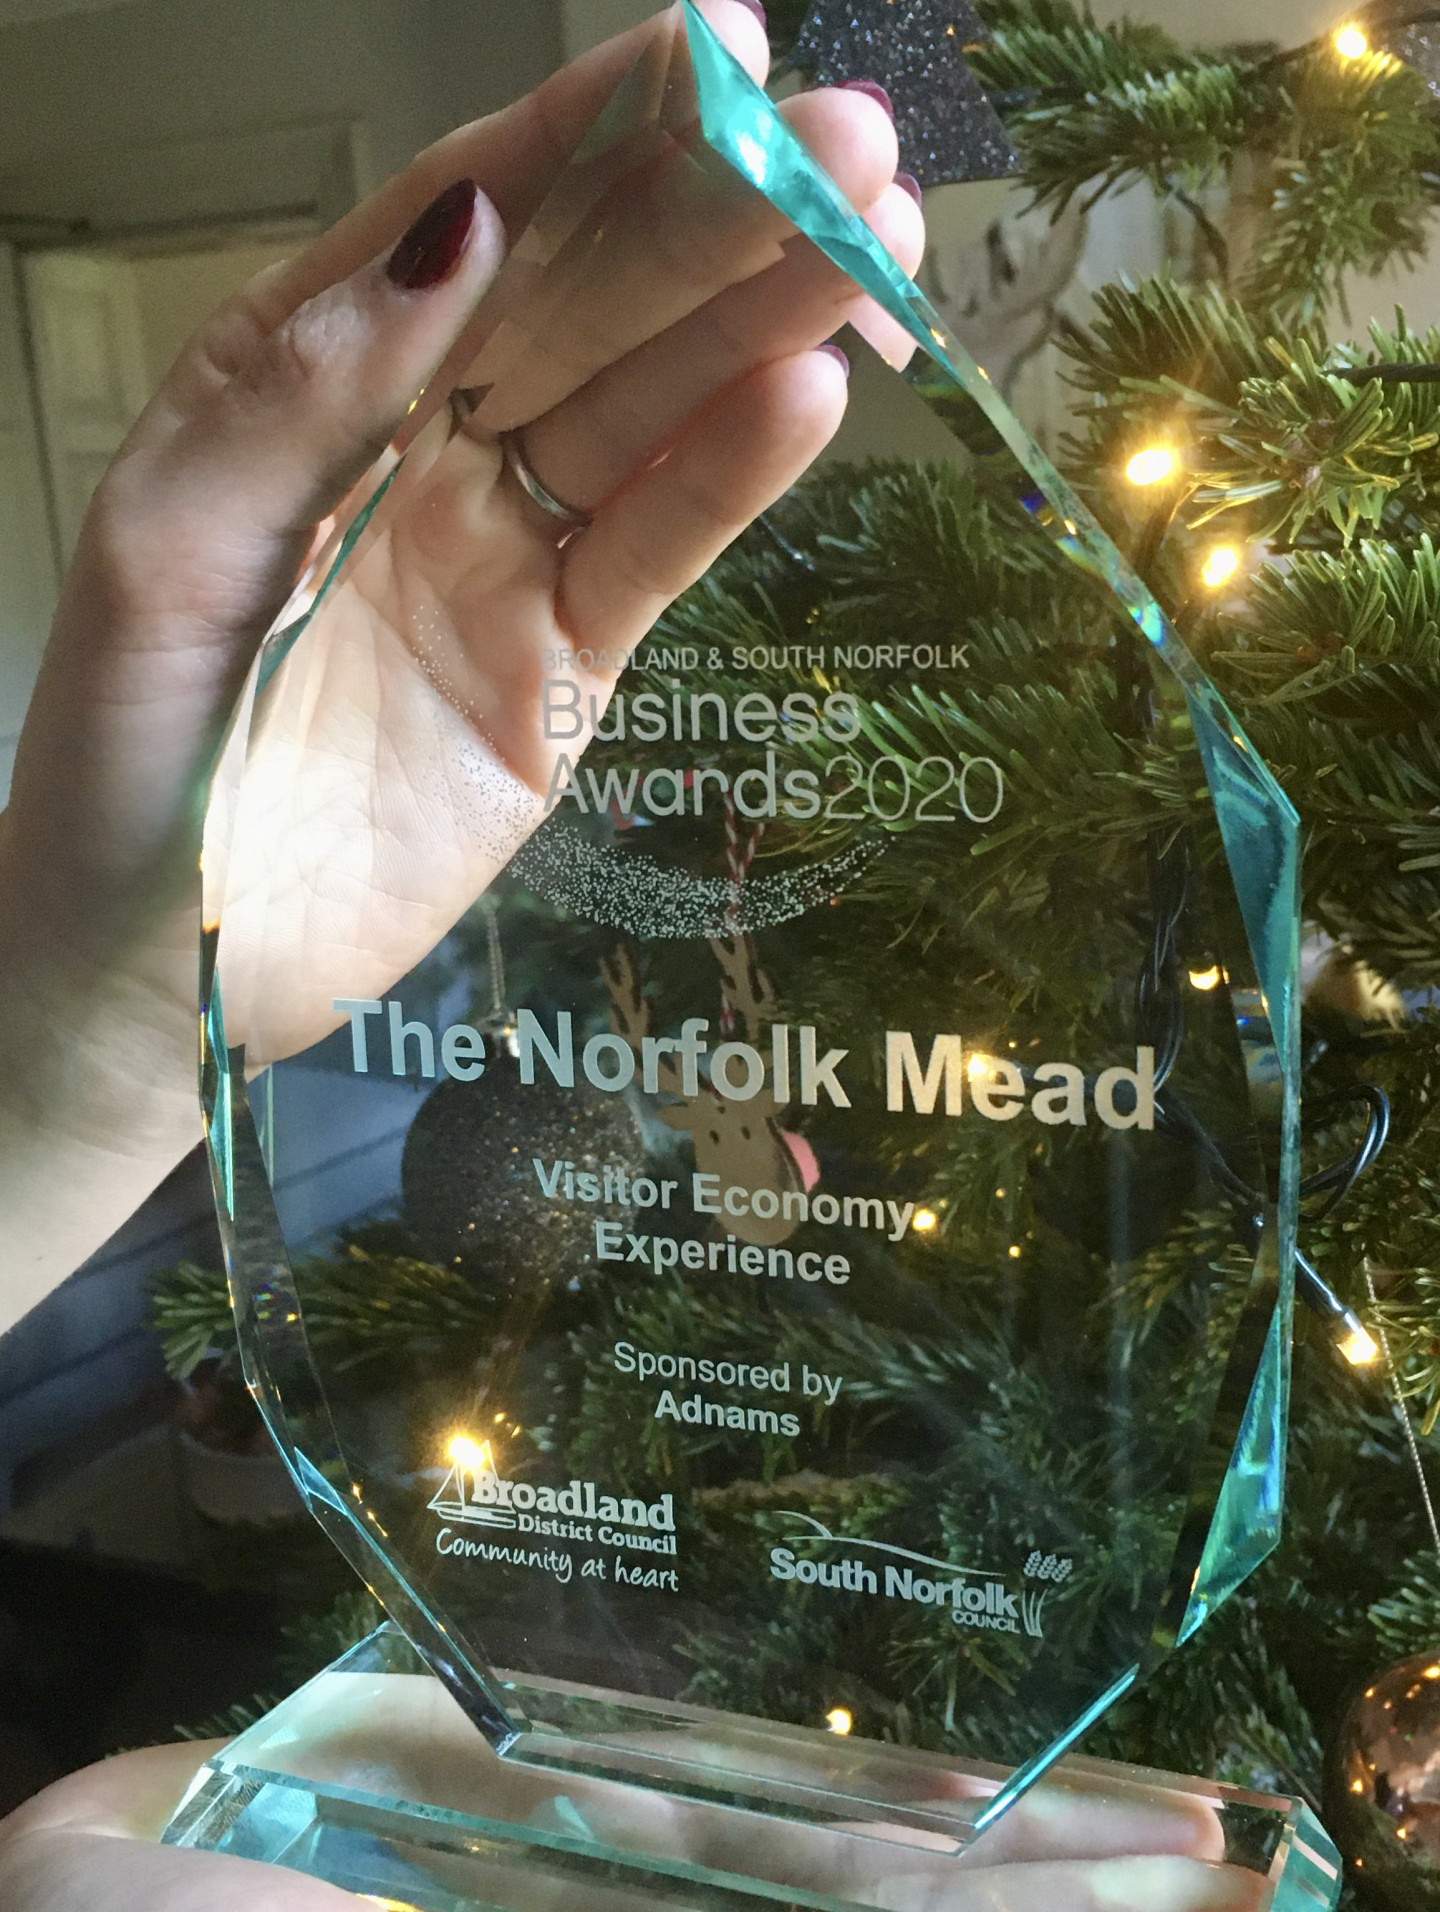 The Norfolk Mead win Visit Economy Experience 2020